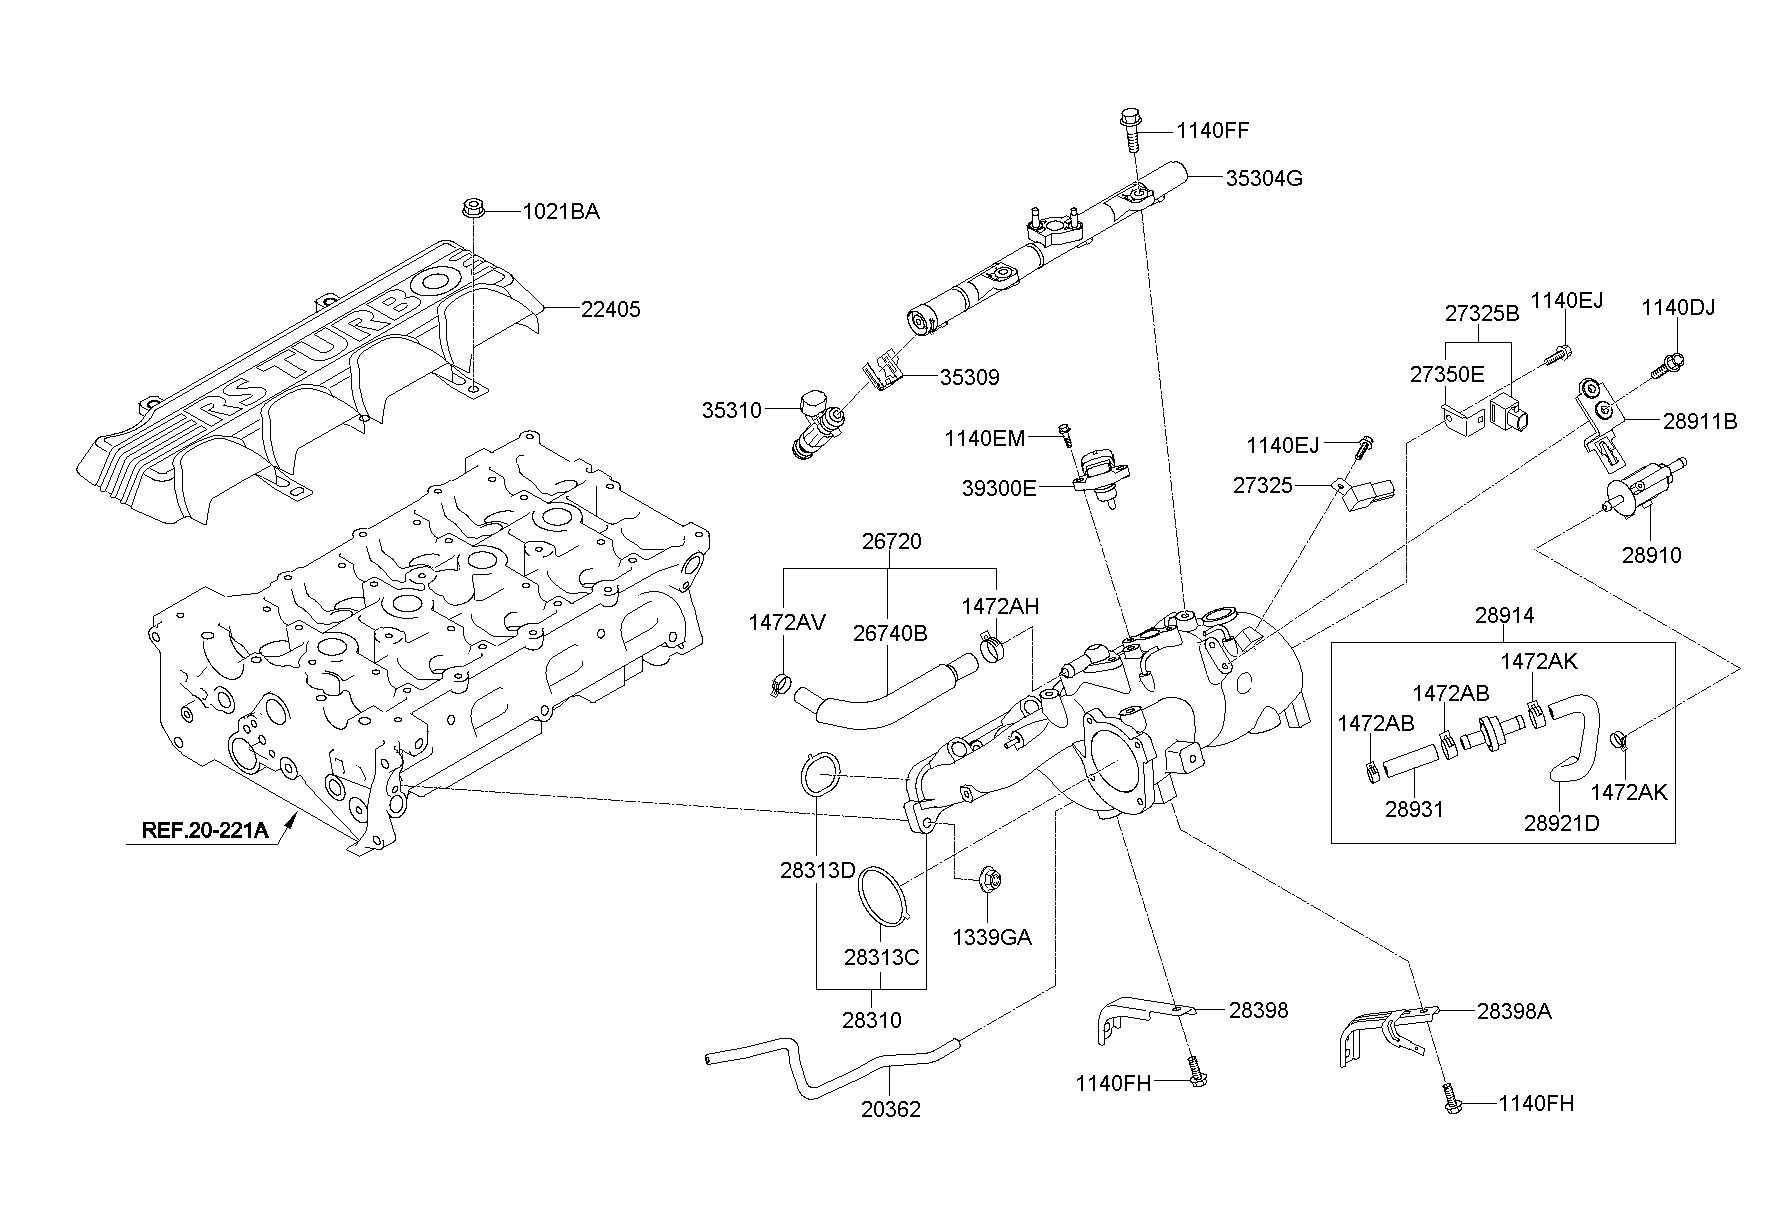 Hyundai Genesis Parts Diagram Likewise 2010 Hood, Hyundai